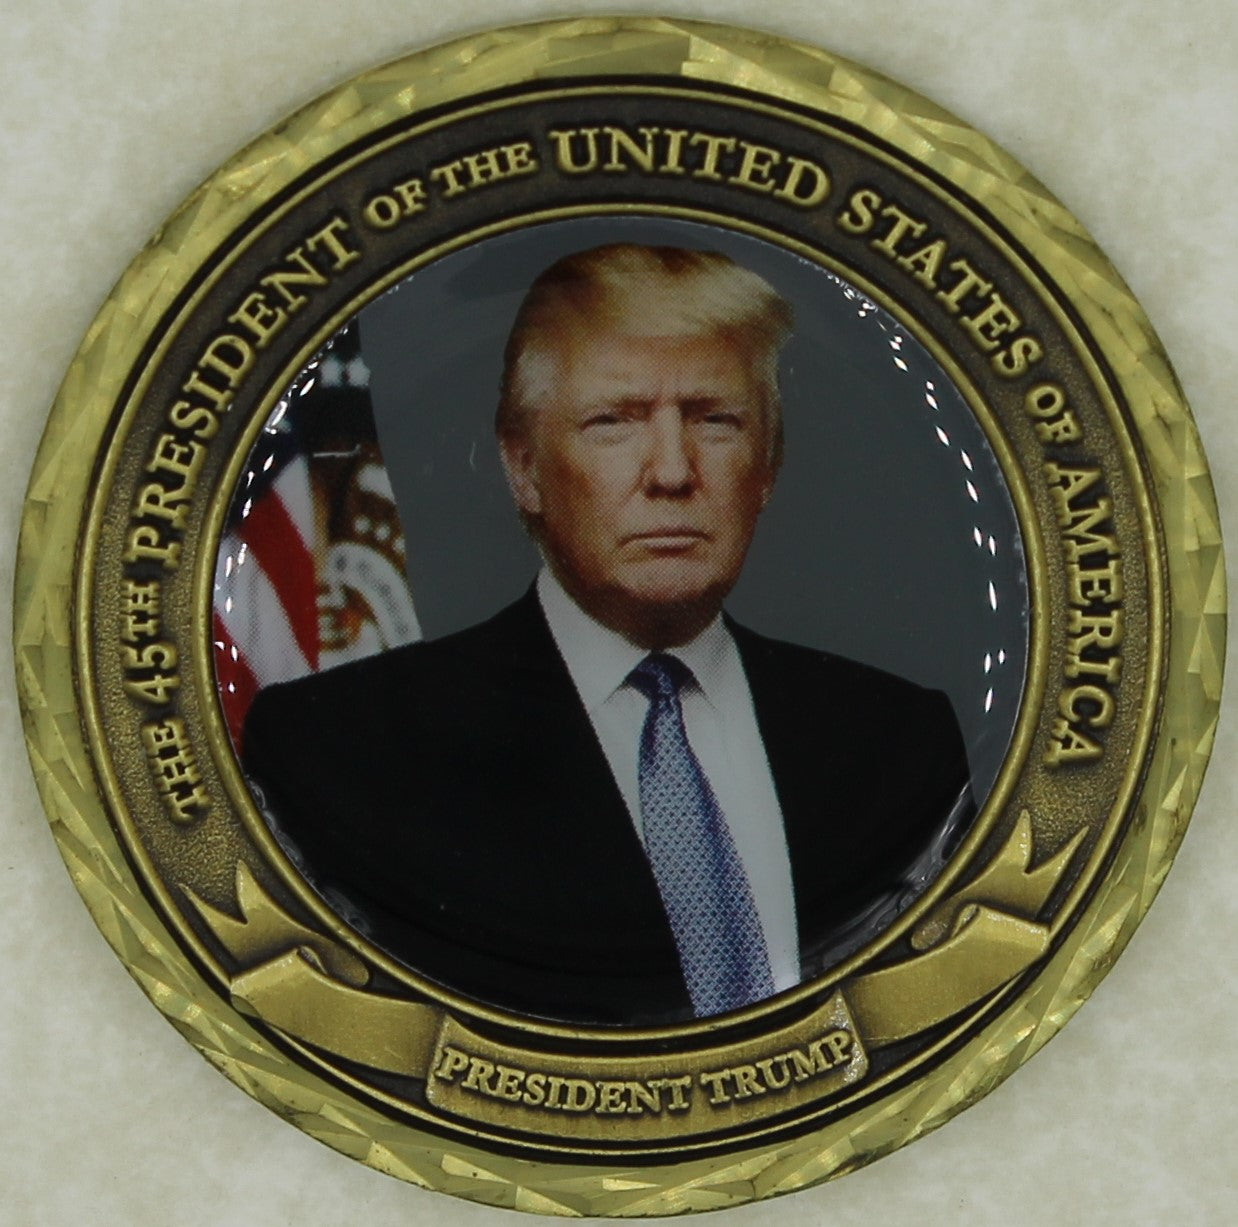 Presidential Inauguration Jan 20, 2017 Donald Trump Challenge Coin